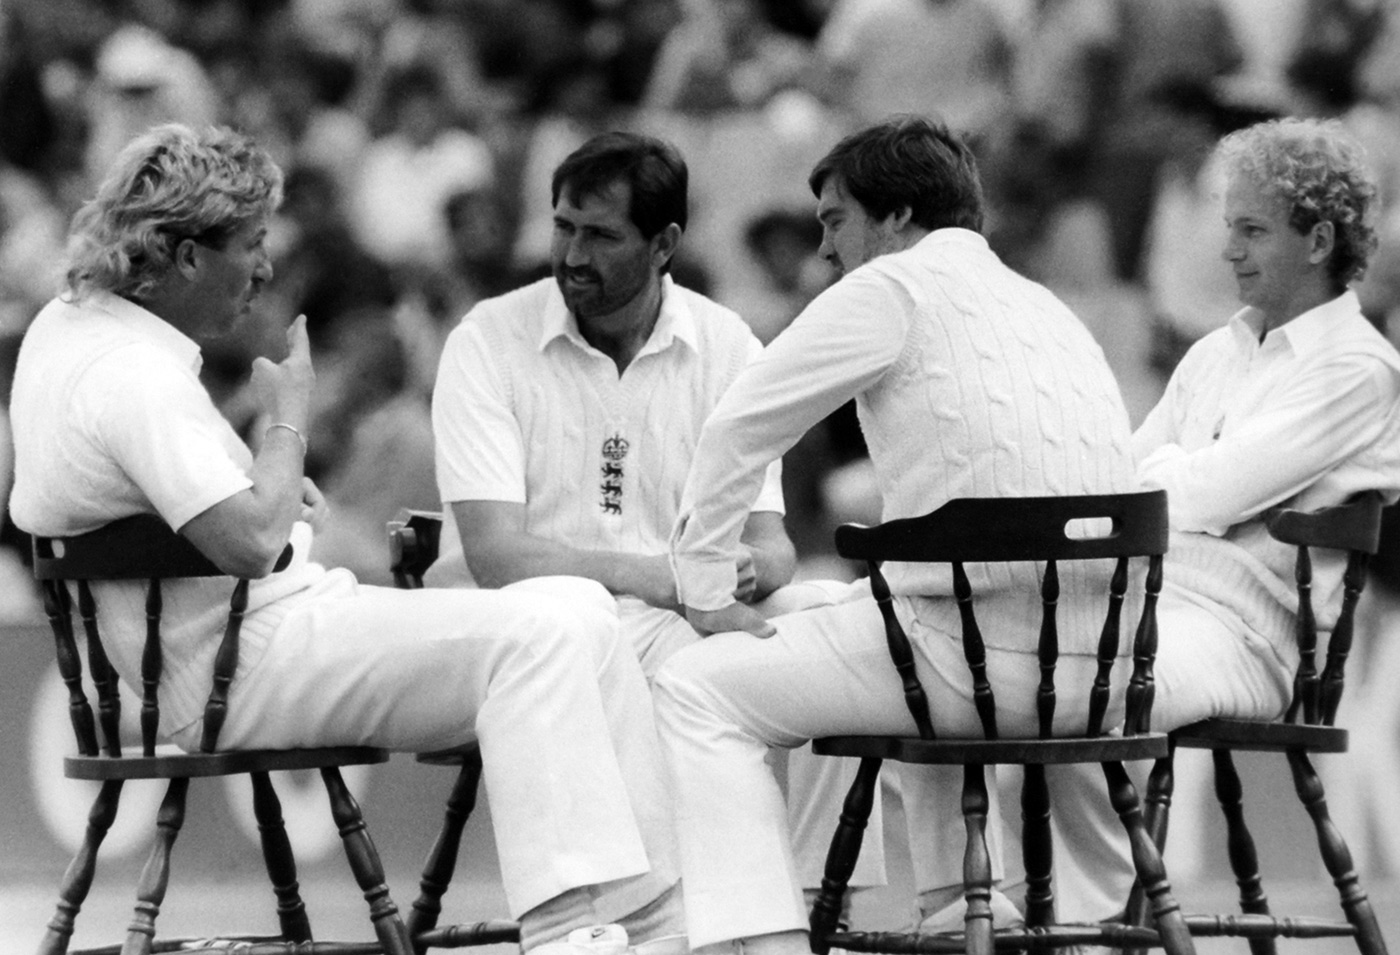 Ian Botham, Graham Gooch, Mike Gatting and David Gower